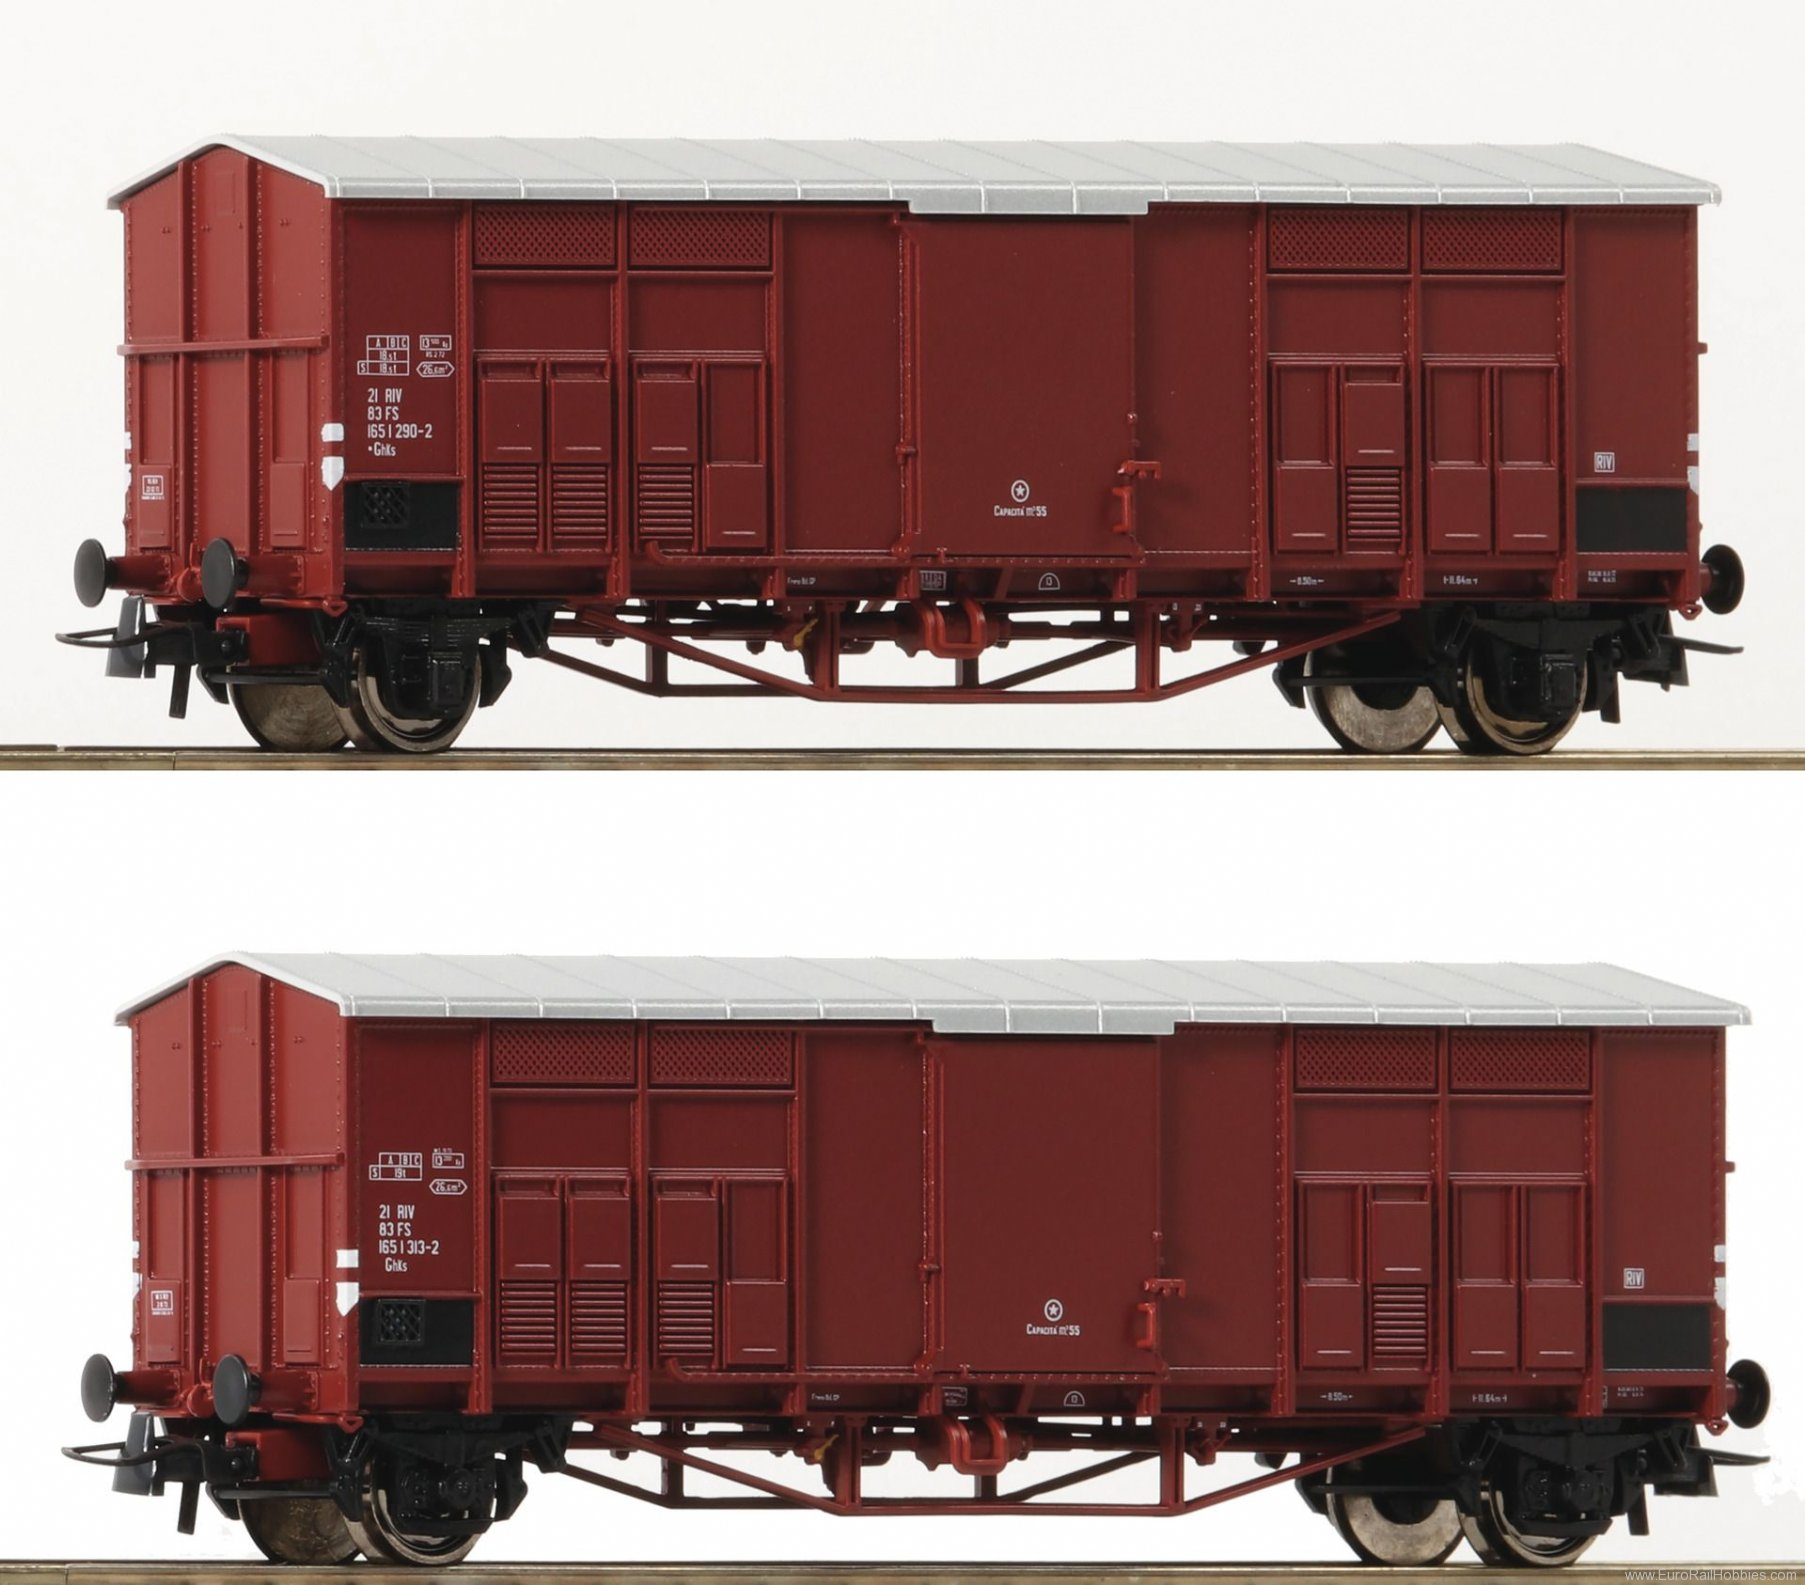 Roco 76164 Roco FS Pitched Roof Wagons, 2 Piece Set - (N